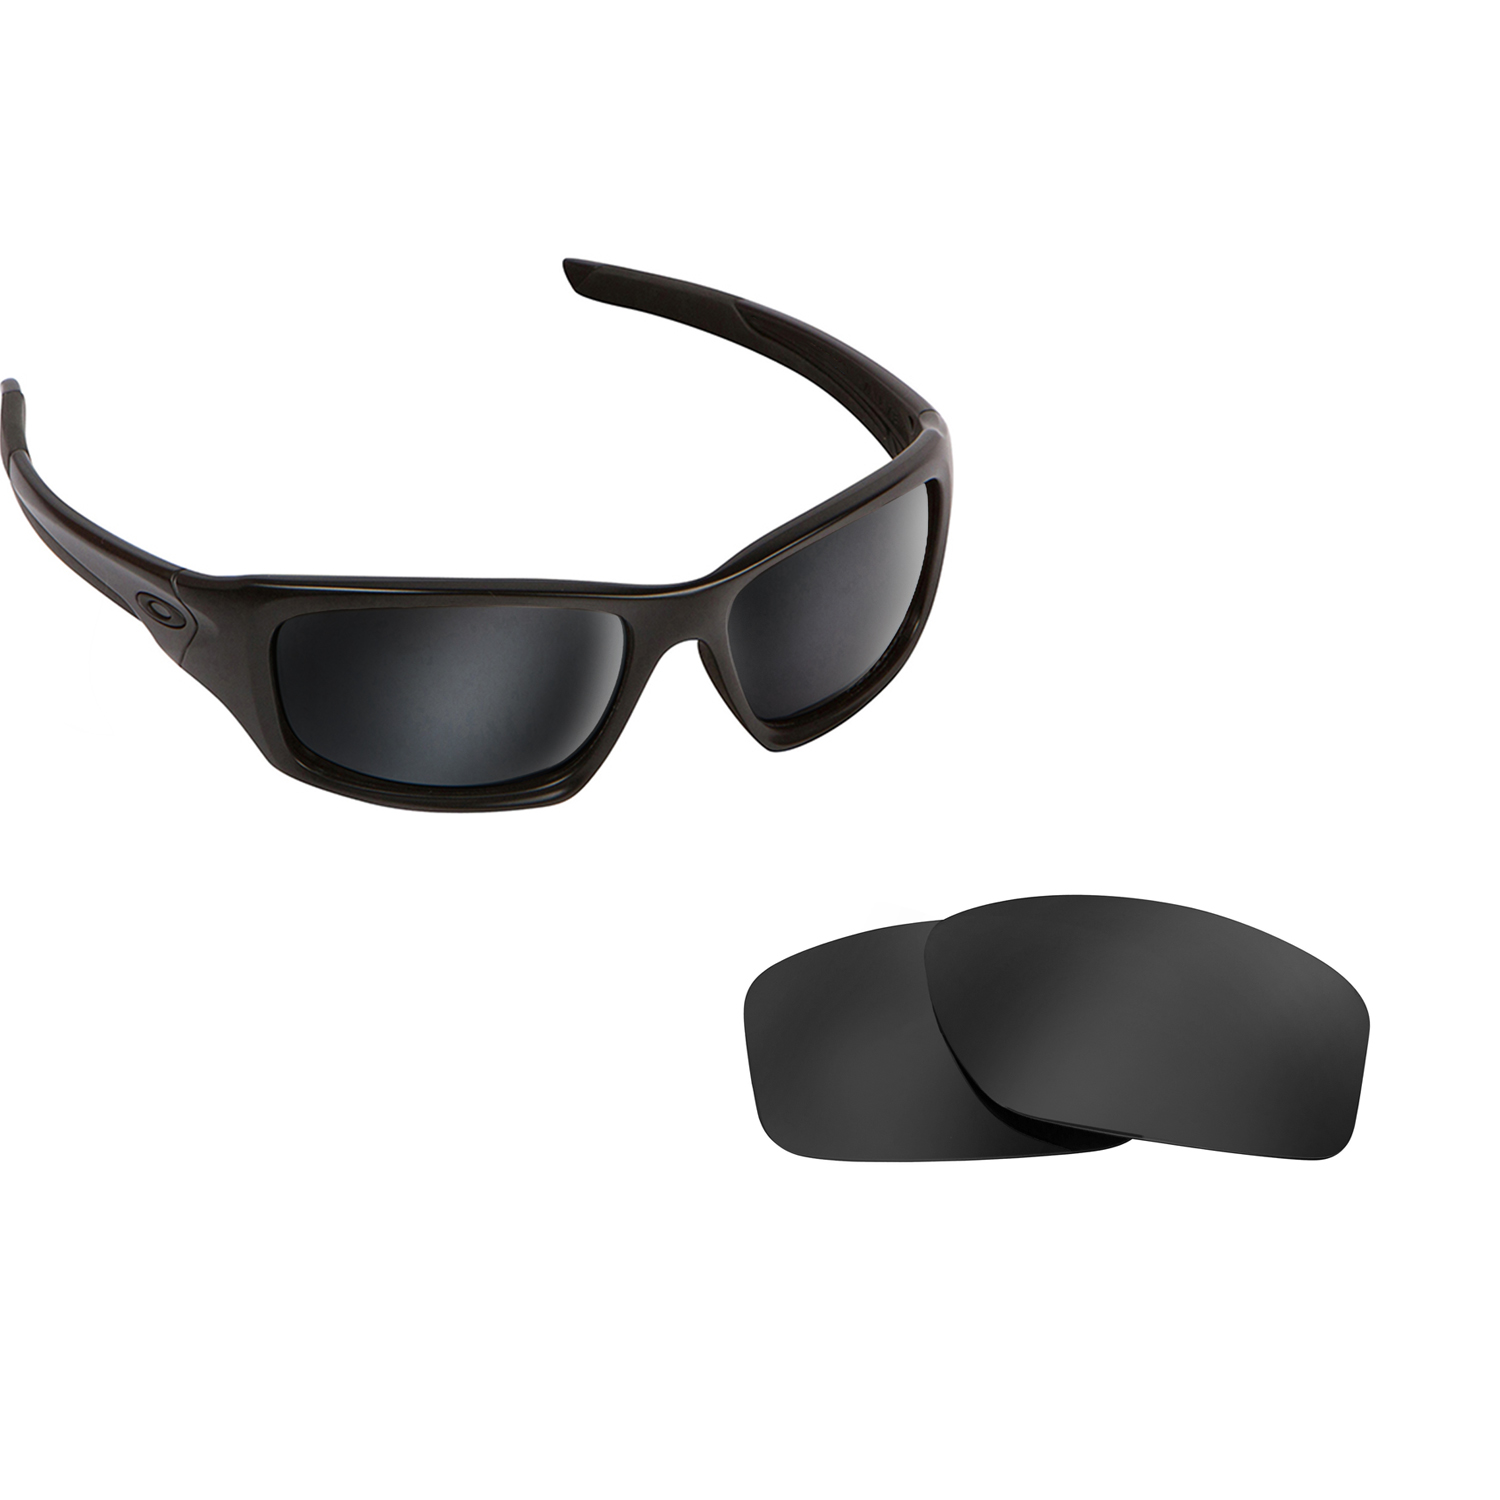 51312af372 VALVE Replacement Lenses by SEEK OPTICS to fit OAKLEY Sunglasses